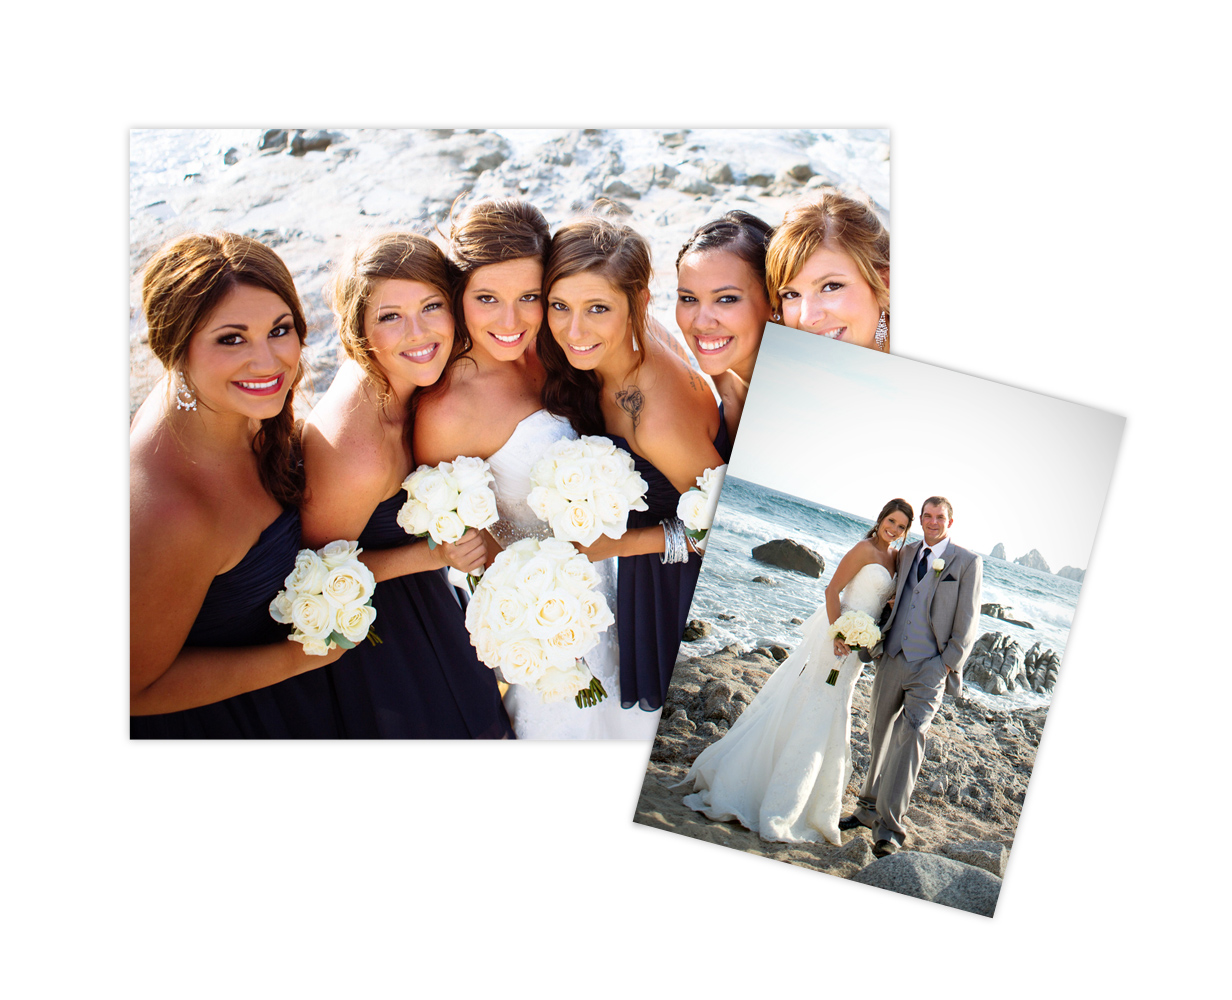 Photographic Prints on Deep Matte Paper - Fuji Crystal Archive Deep Matte paper is the premier matte paper used by professional photographers. Deep matte, lustreless surface creates tremendous visual impact and produces rich color with pure whites and sharp text quality.